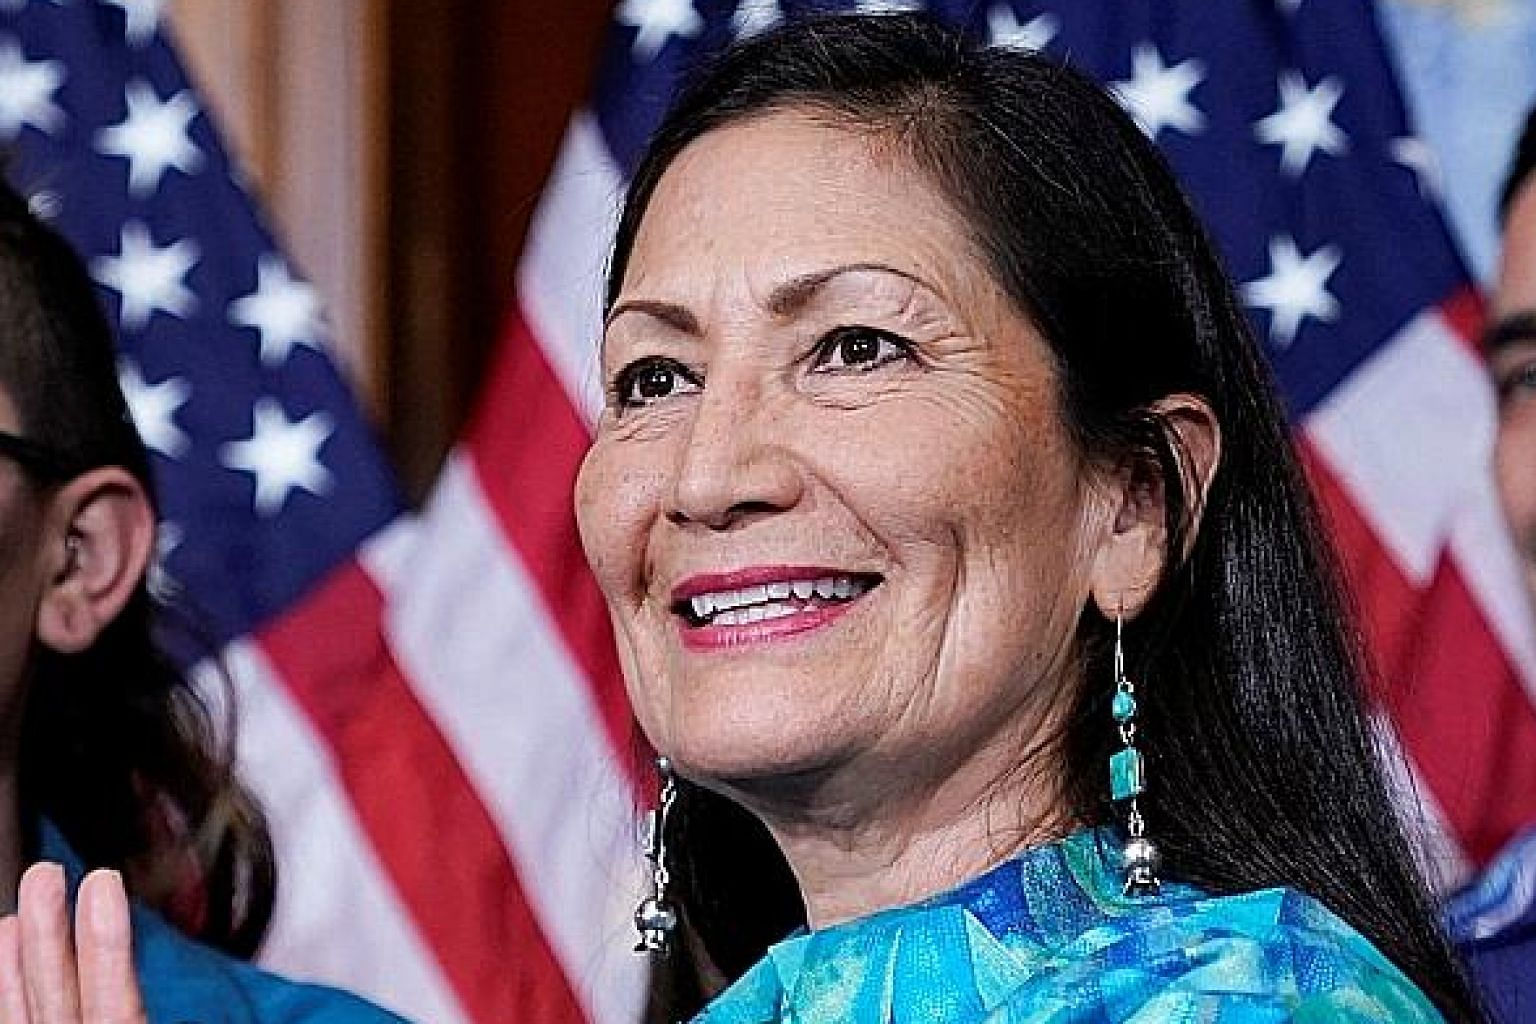 Ms Deb Haaland, representing the state of New Mexico, became one of the first two Native American women to be sworn into Congress last month.